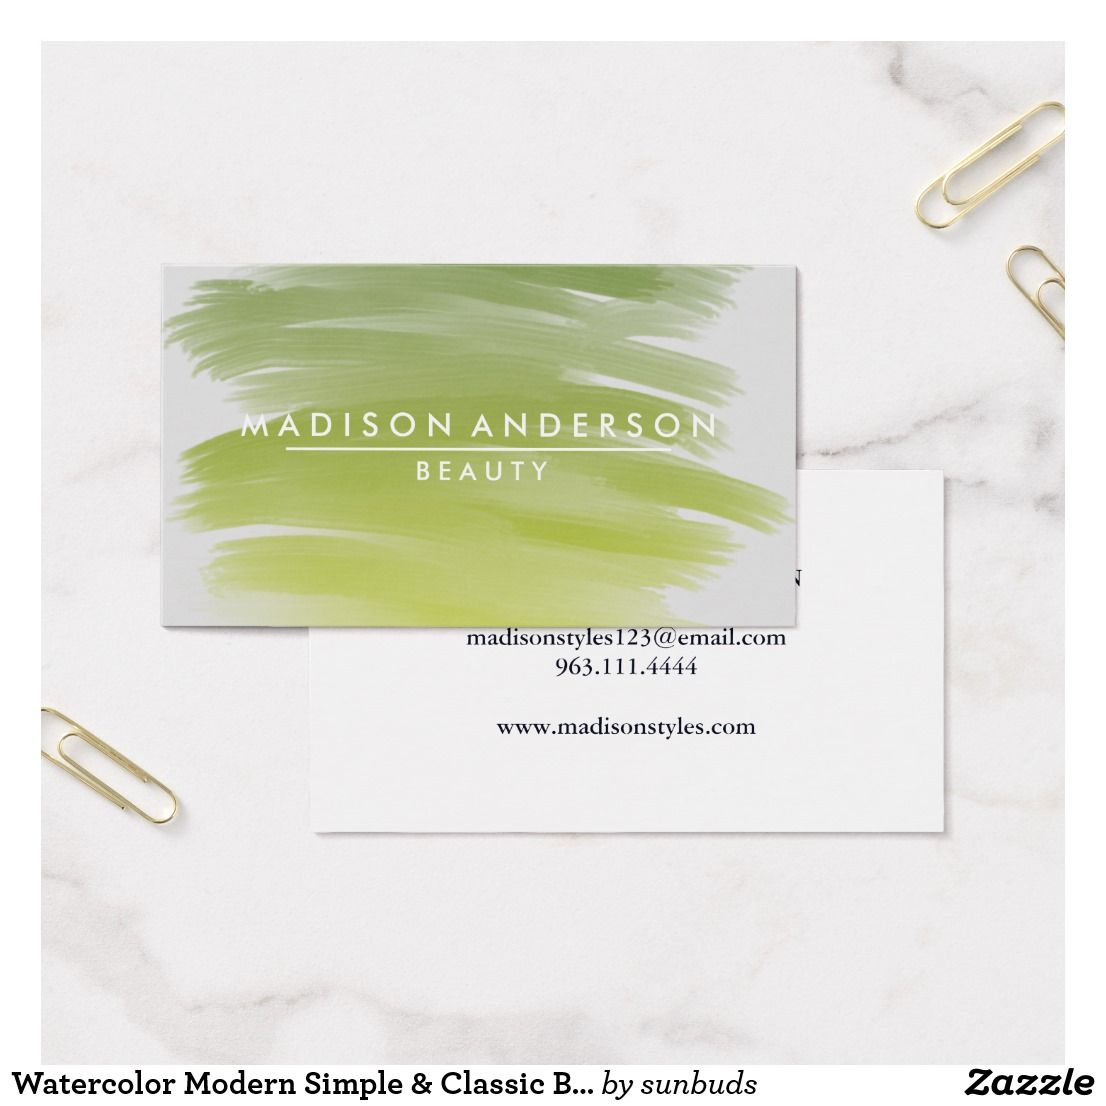 Watercolor Modern Simple & Classic Beauty Business Card